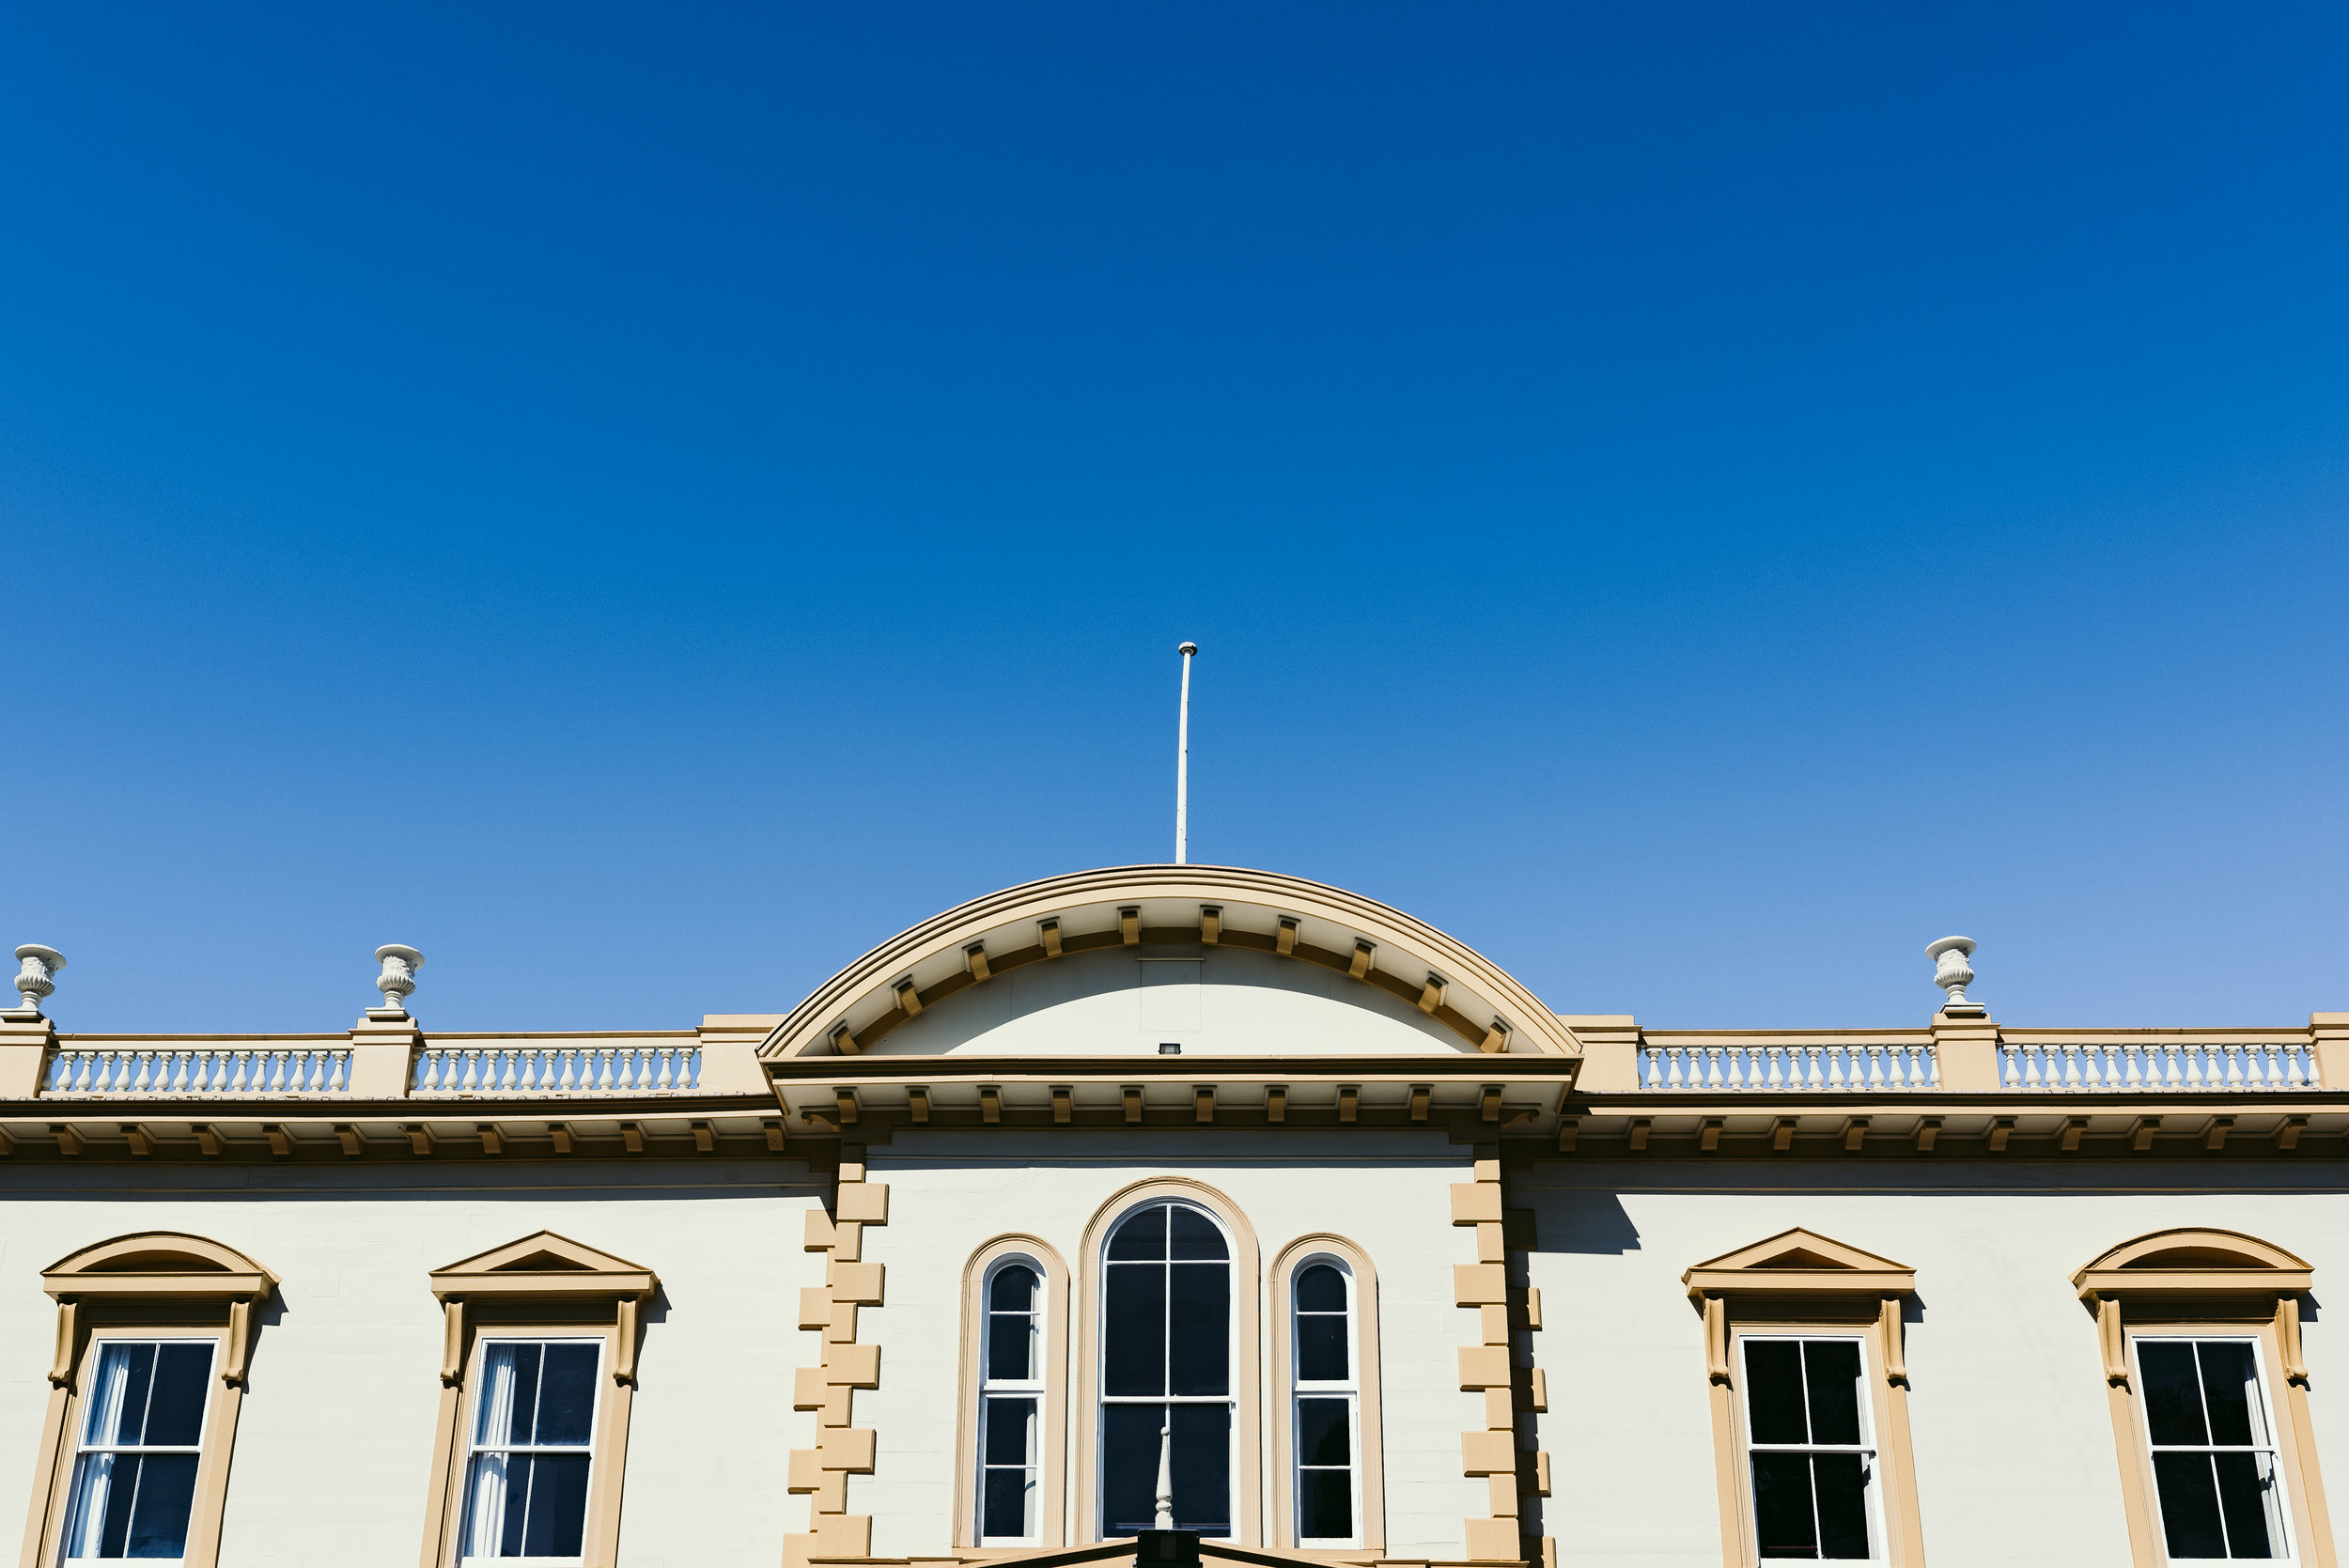 Studio South - The International-23.jpg